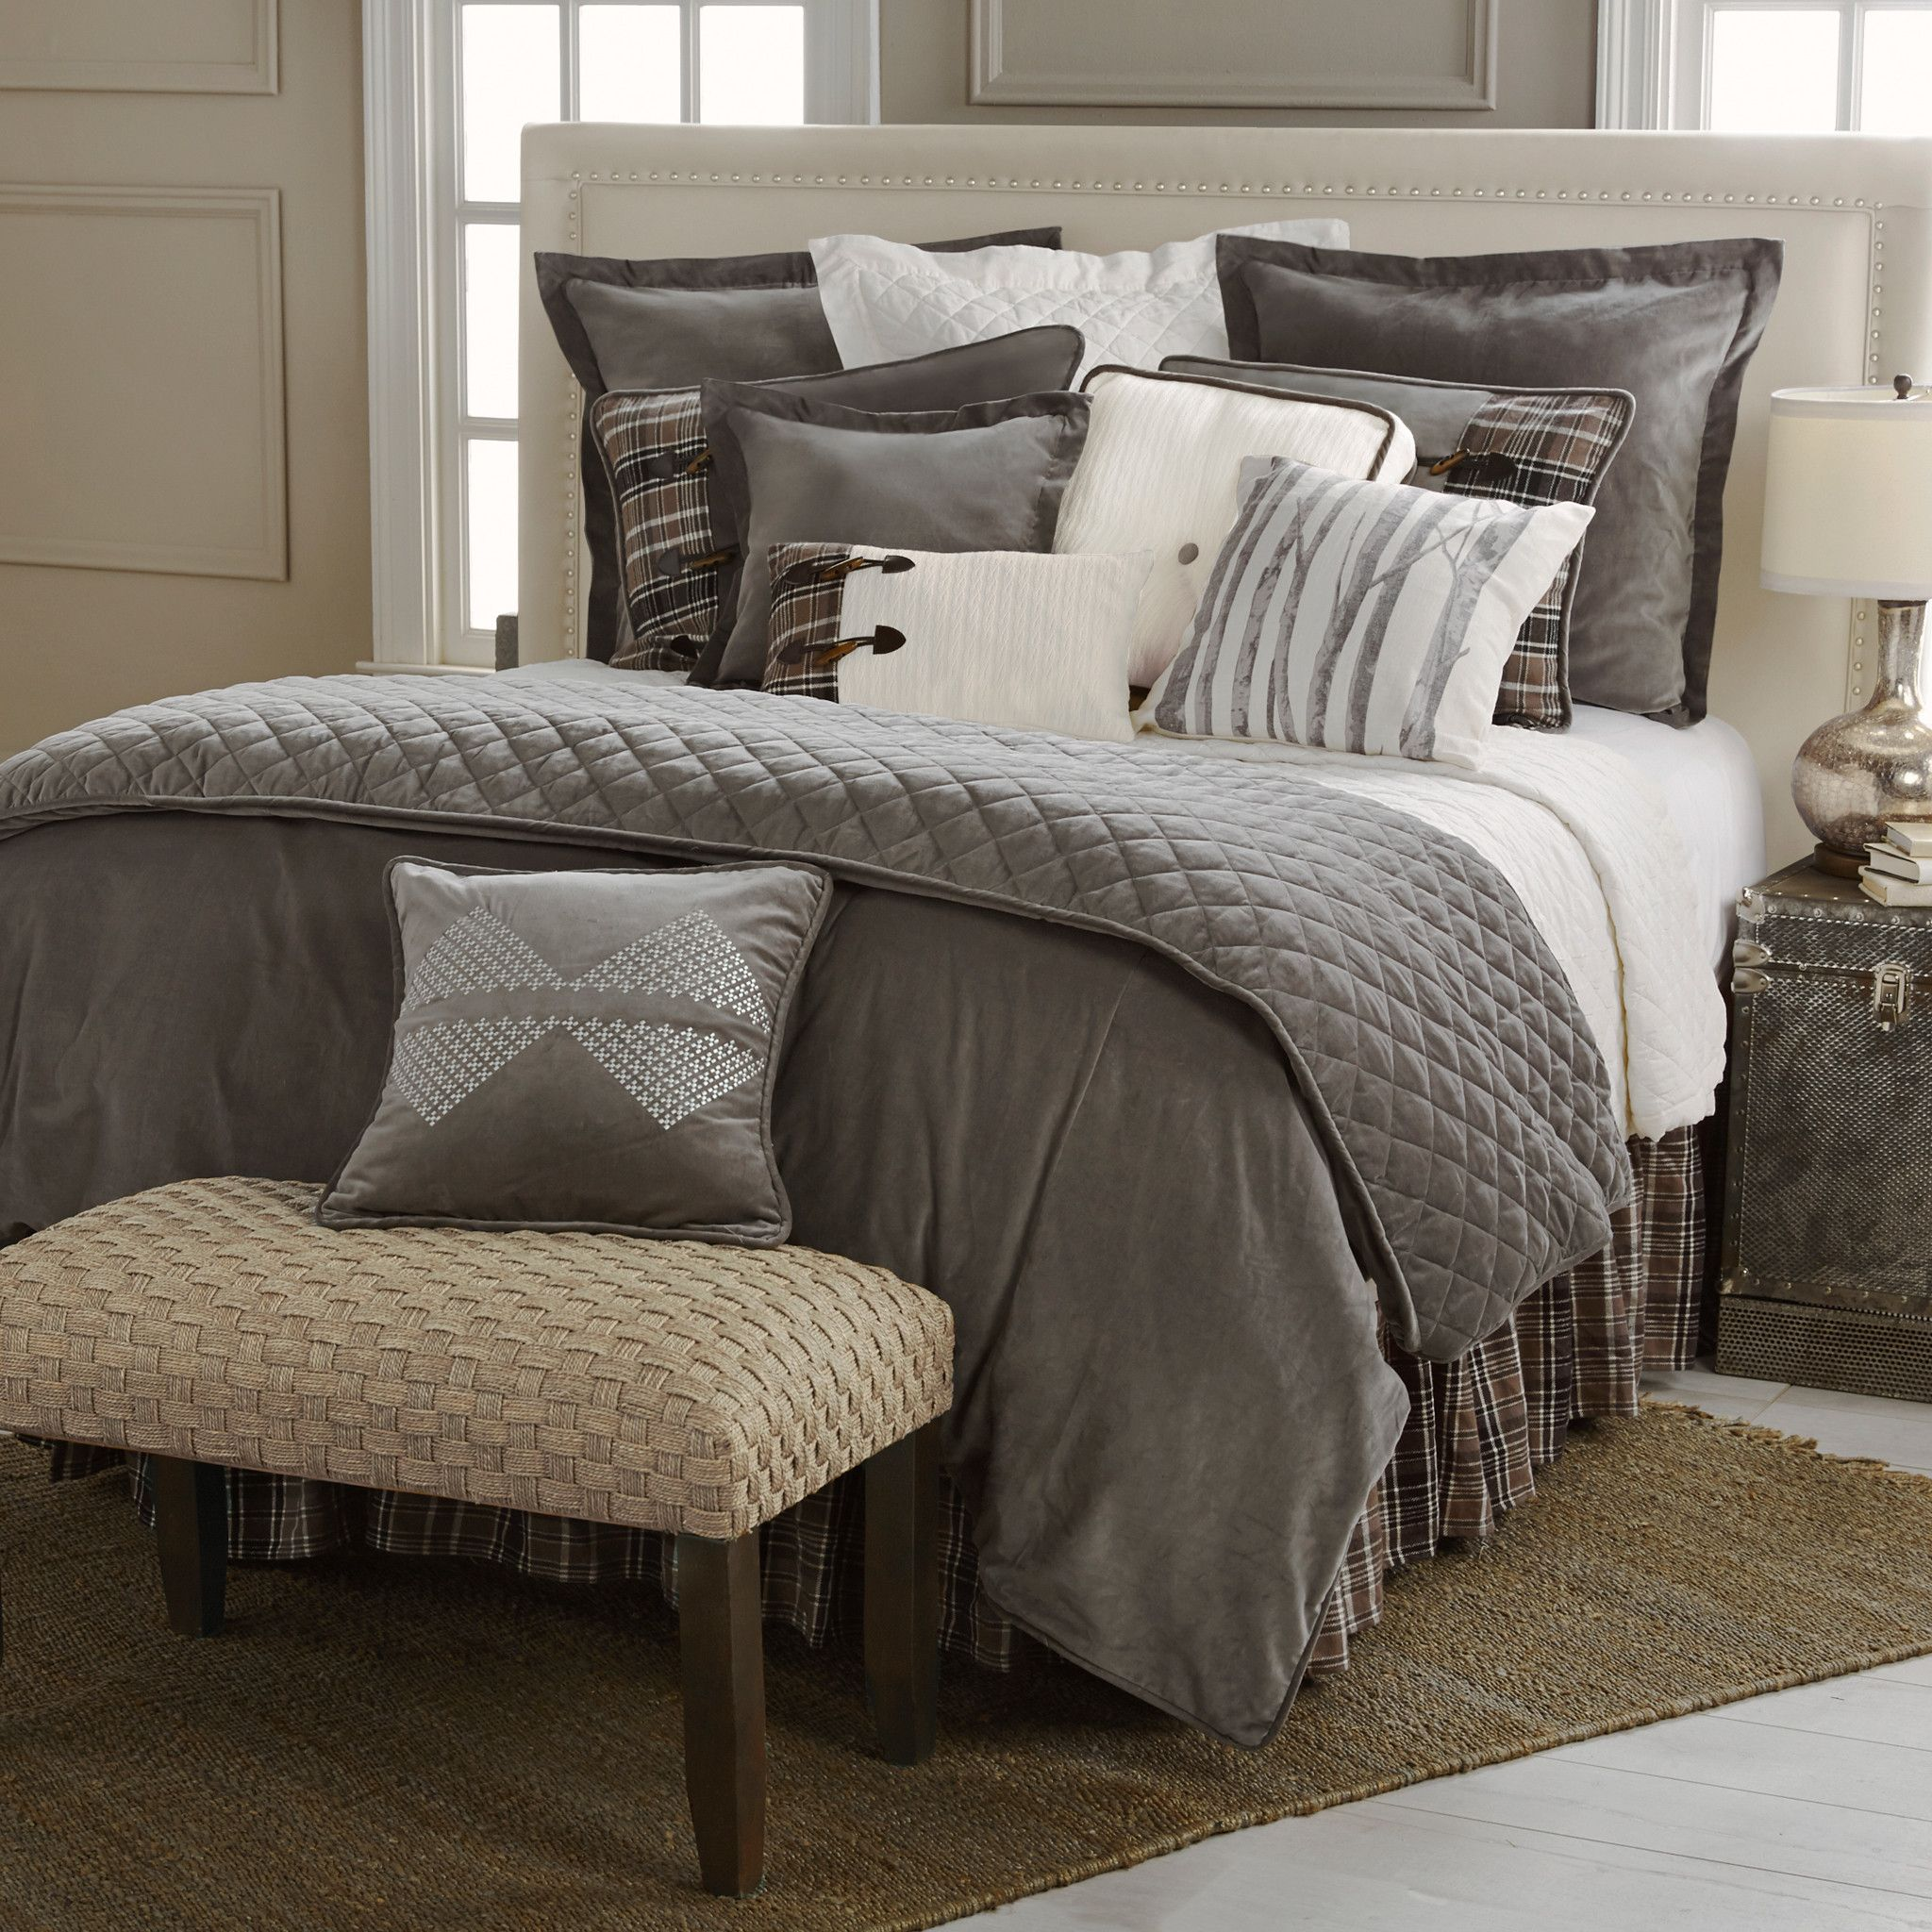 rustic comforter a original photos bed for in style american set of blocks intended bedding cabin cookwithalocal huts gallery decorate bag geo home comforters